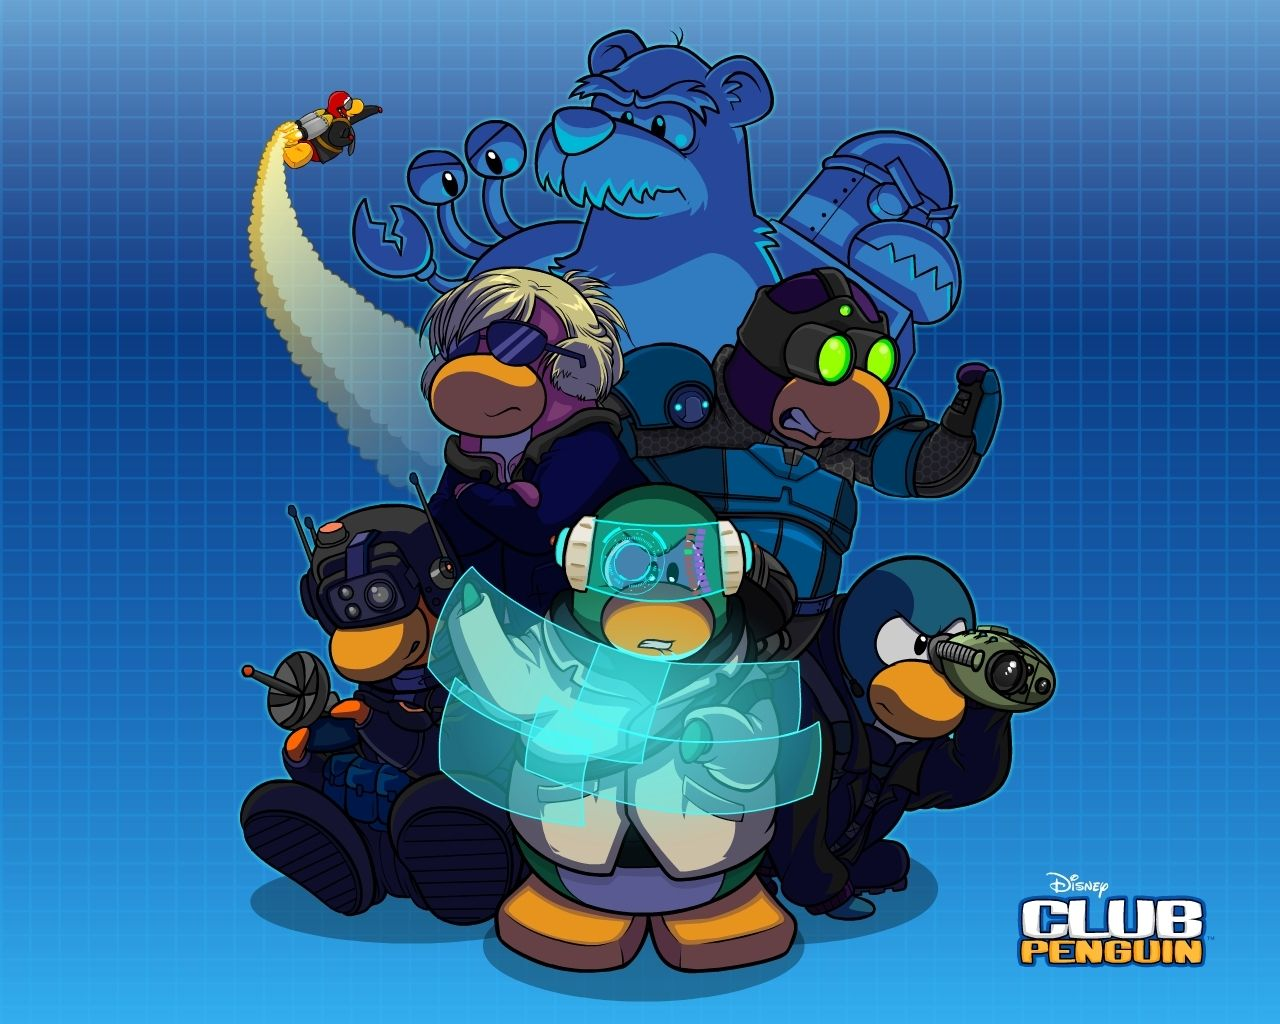 Cold Dude Computers Club Penguin Wallpapers Club